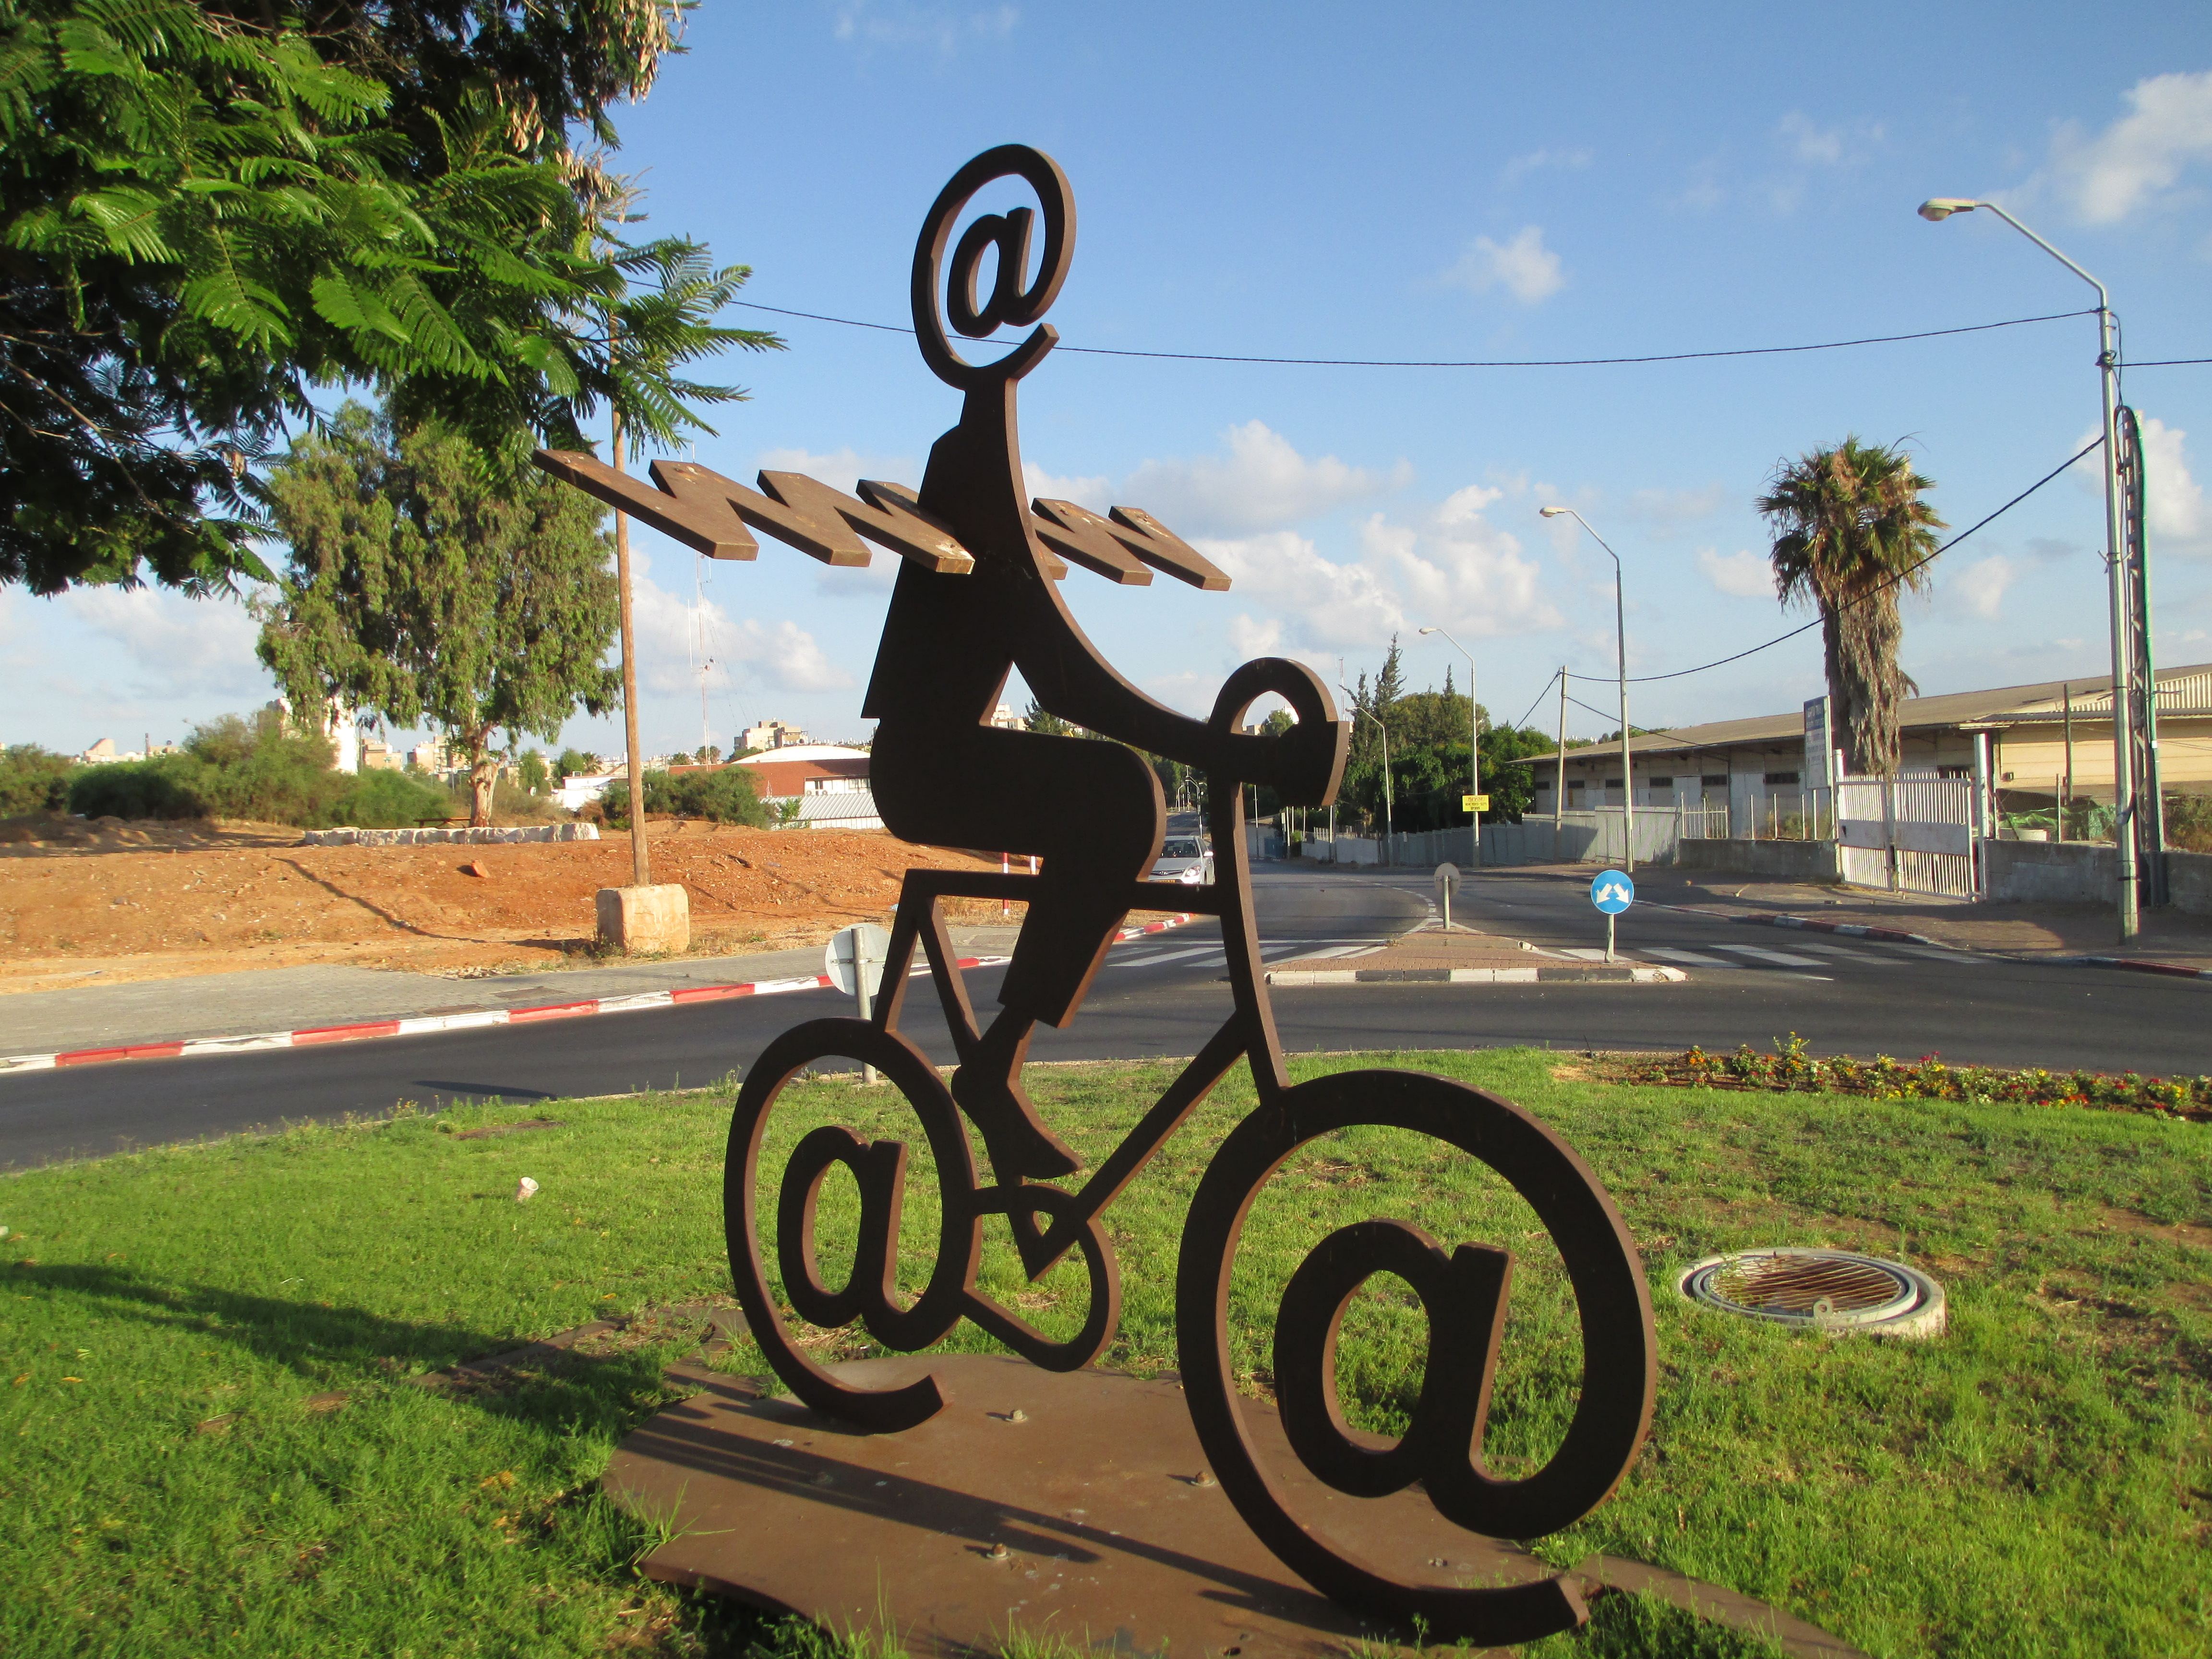 PikiWiki_Israel_32304_The_Internet_Messenger_by_Buky_Schwartz